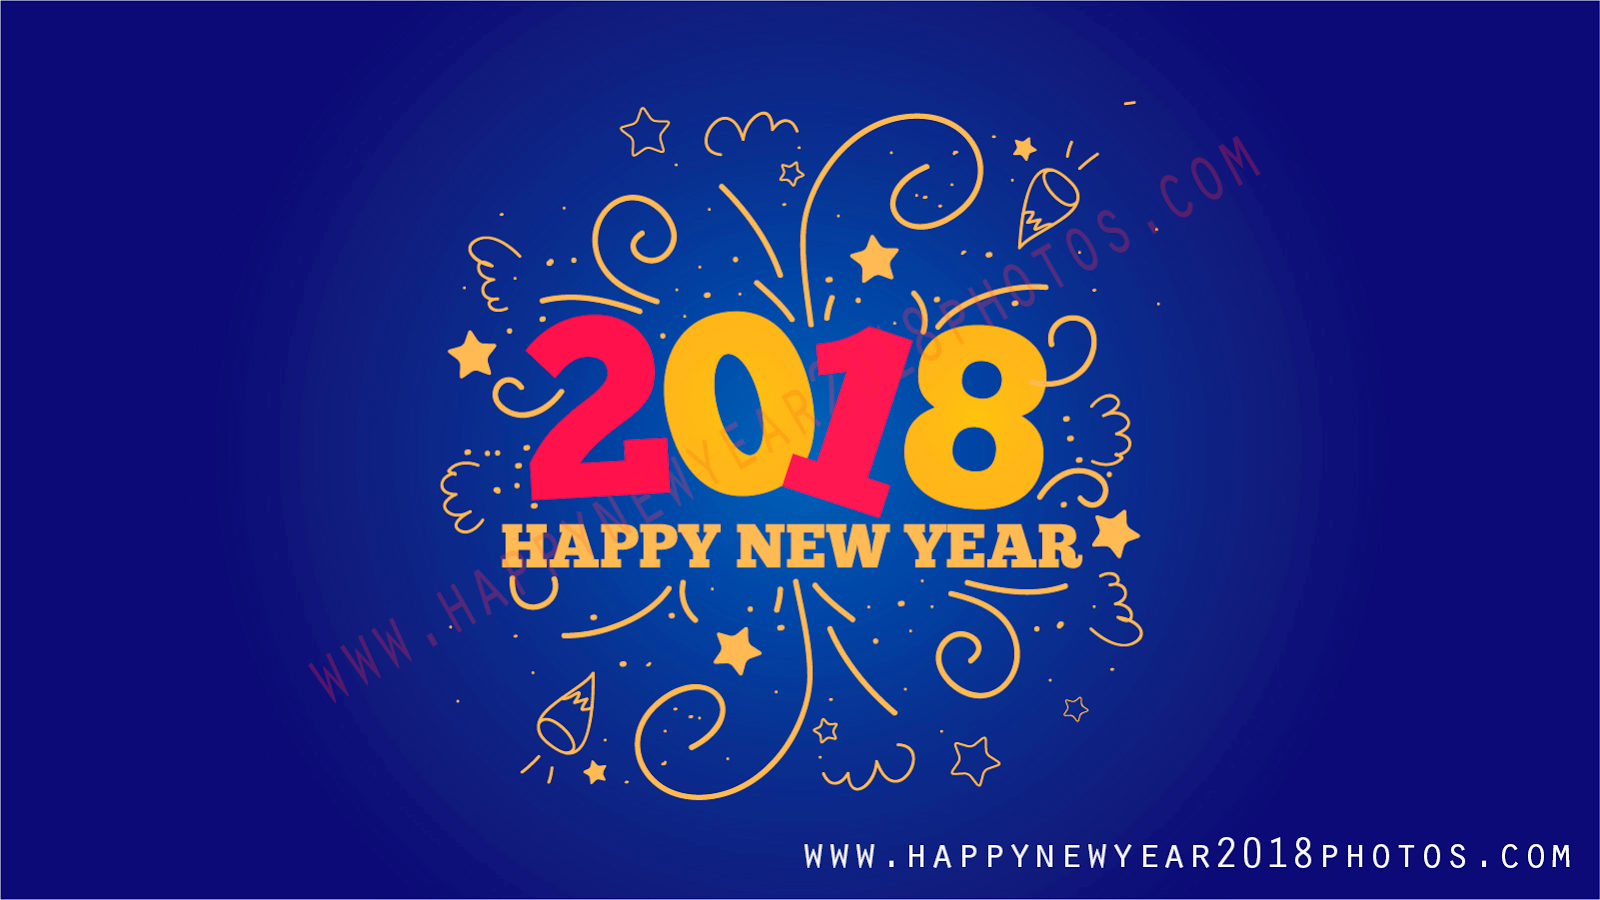 New Year 2018 Hd Wallpapers